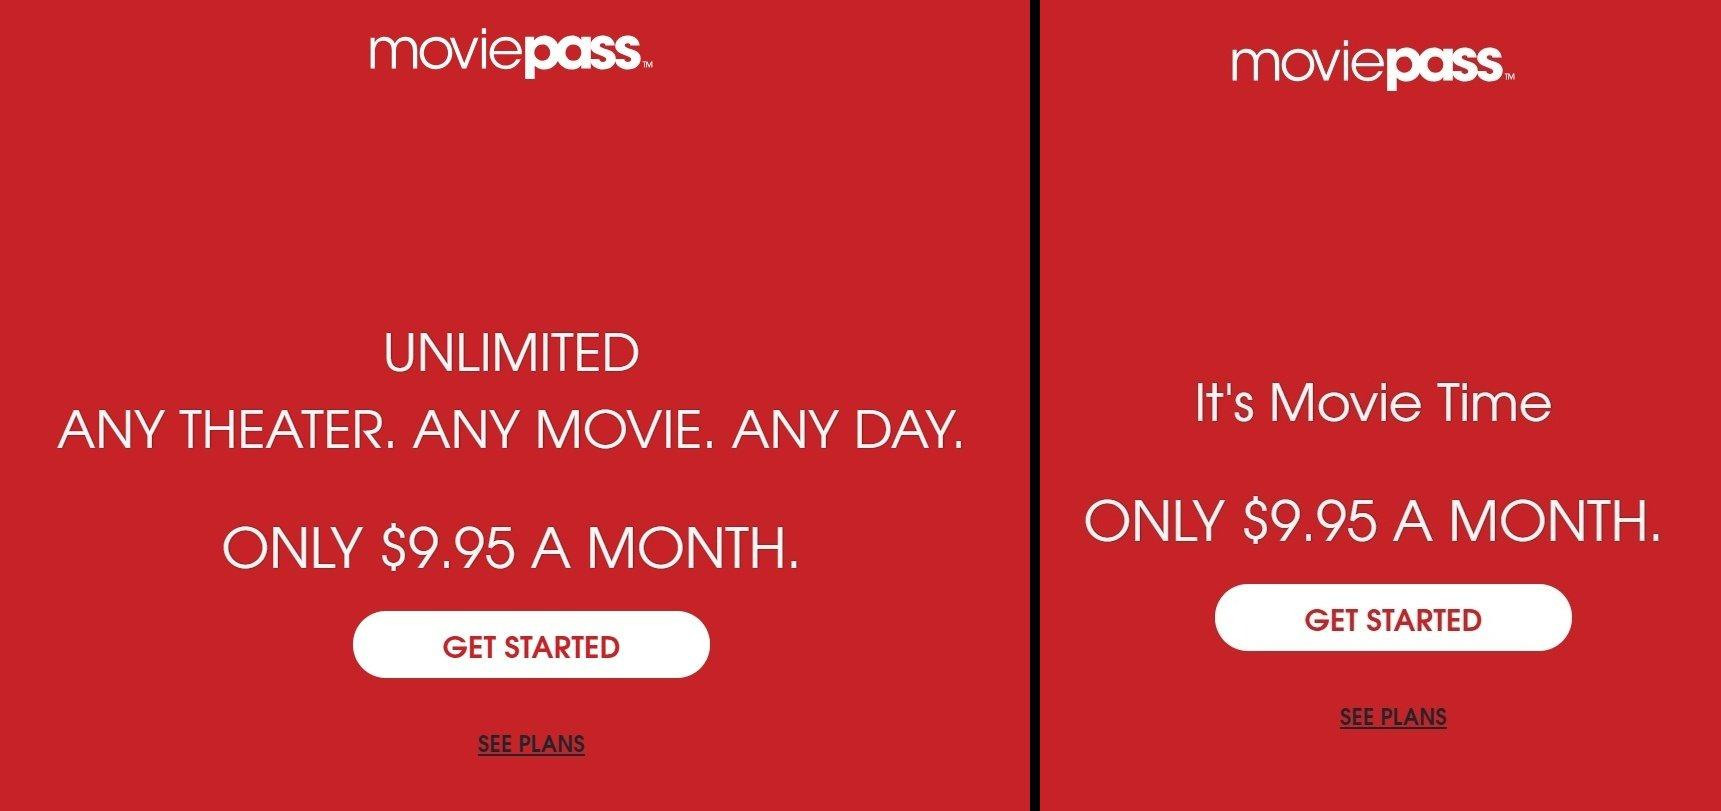 moviepass-before-after